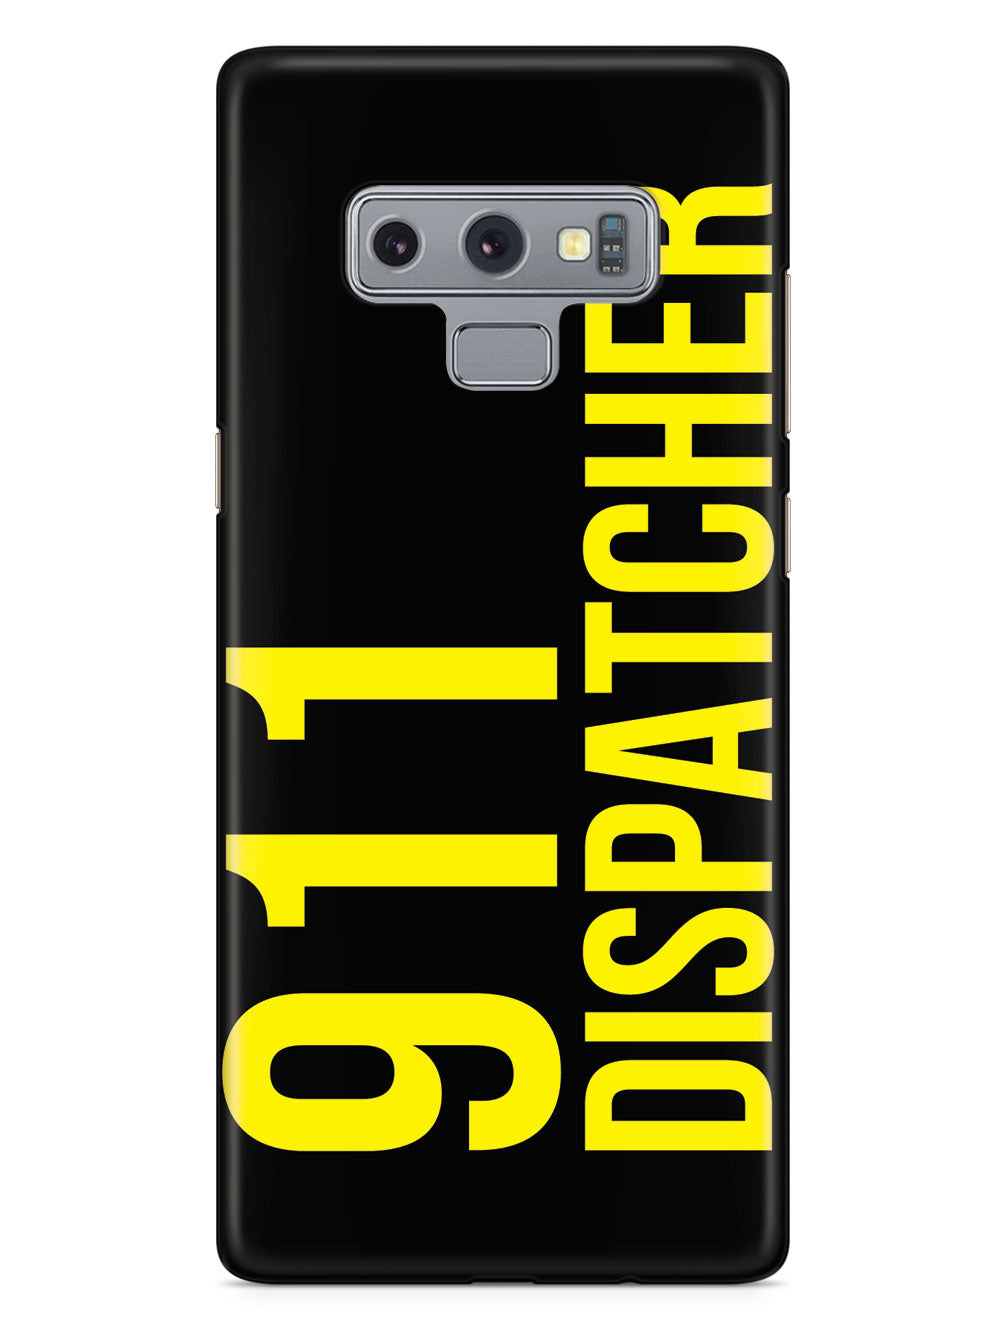 911 Dispatcher - Dispatch Specialist Case